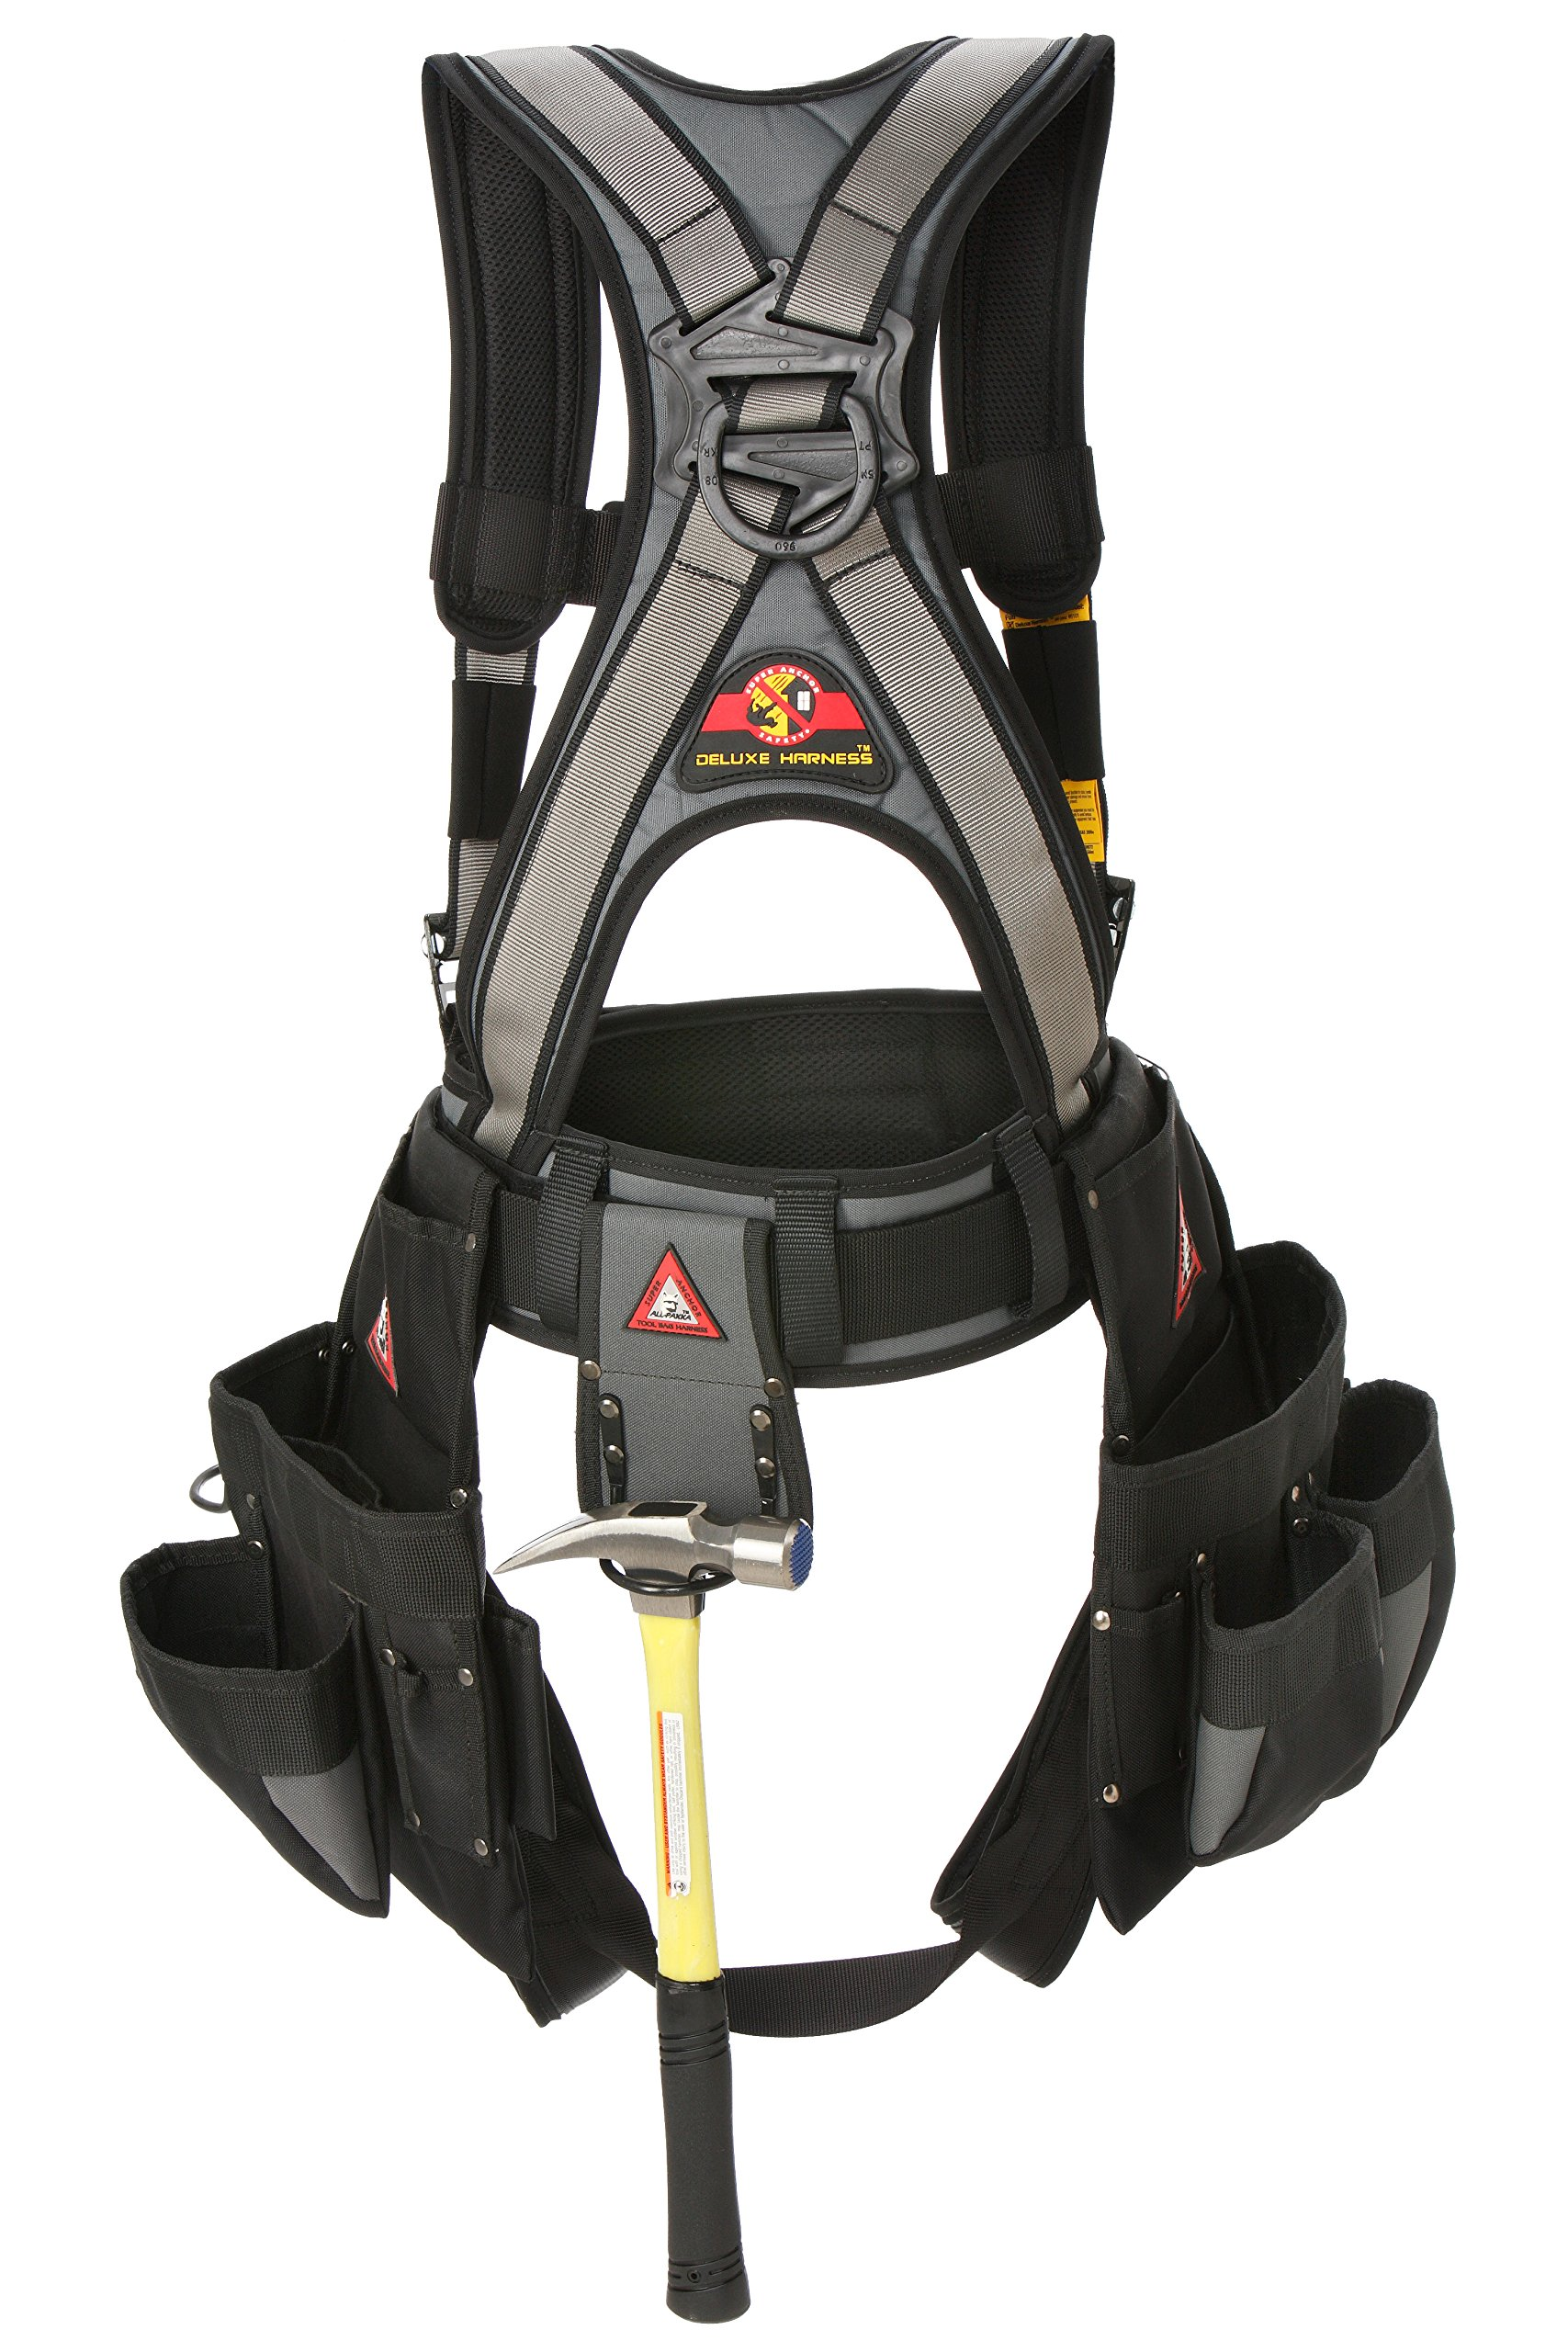 Super Anchor Safety 6151-SL Deluxe Full Body Harness plus All-Pakka Tool Bag Combo, Large, Silver